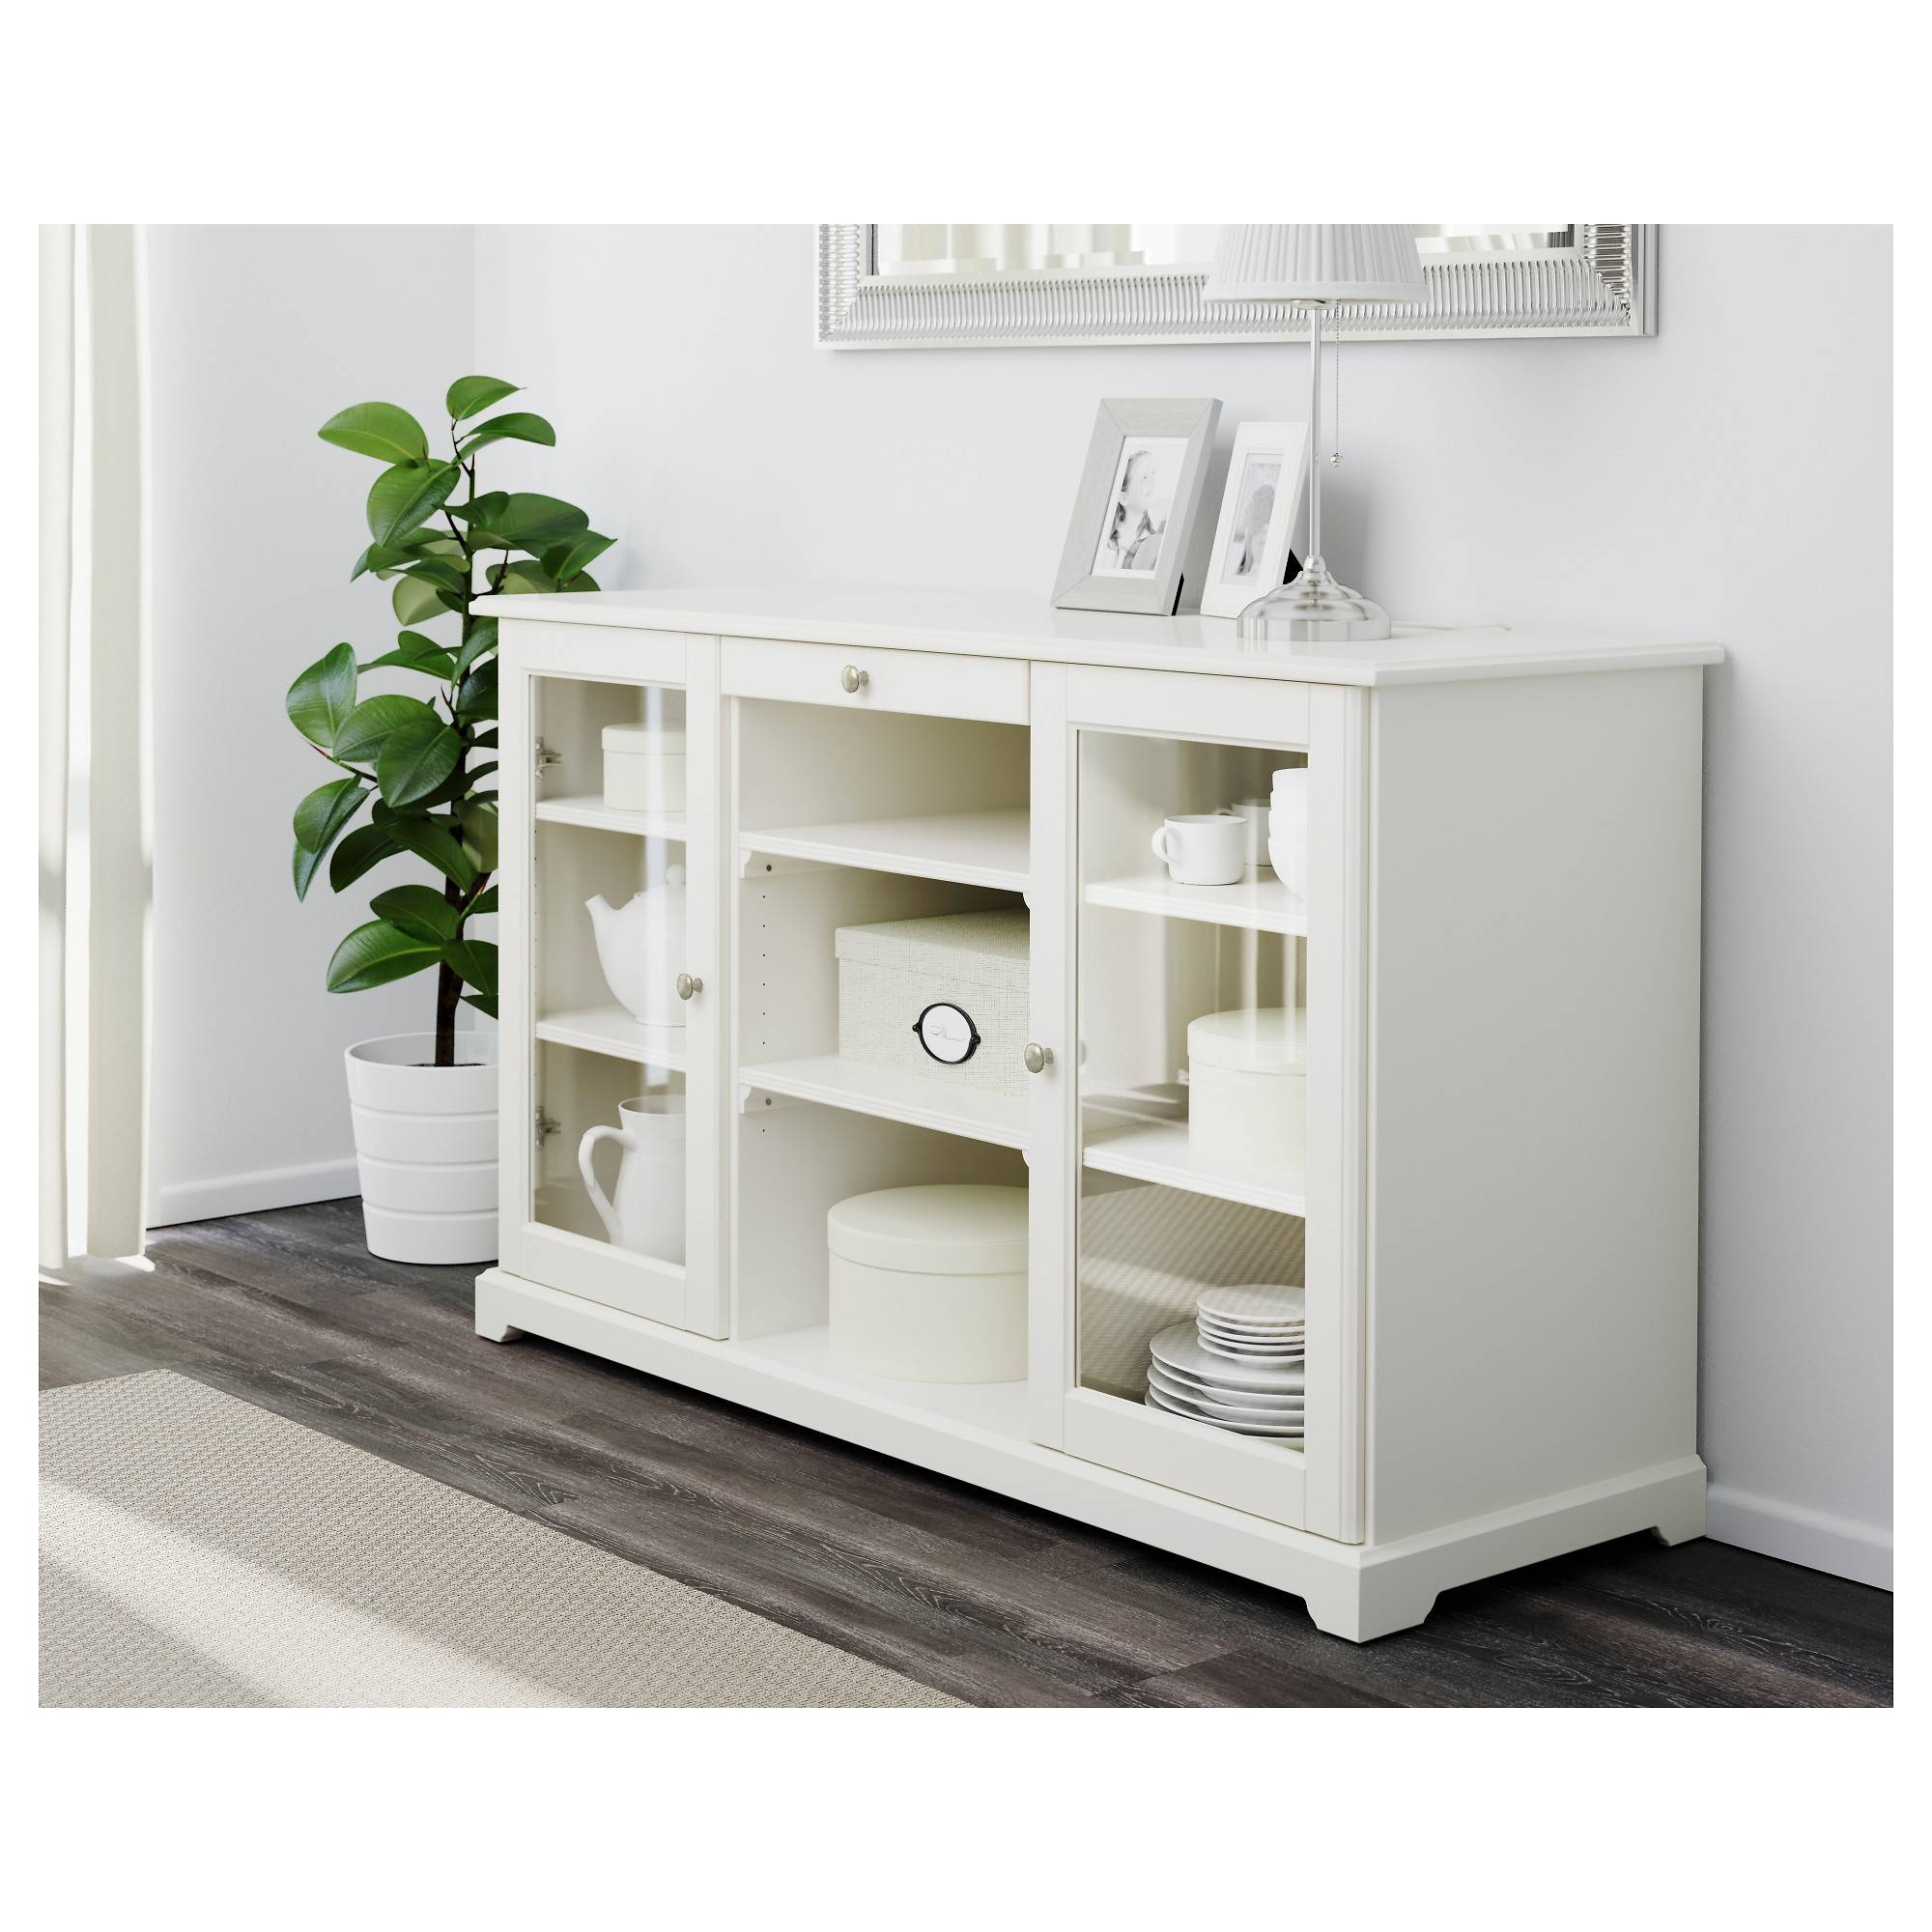 Sideboards. Astounding Small Sideboard: Small-Sideboard-Small throughout White Sideboards for Sale (Image 16 of 30)